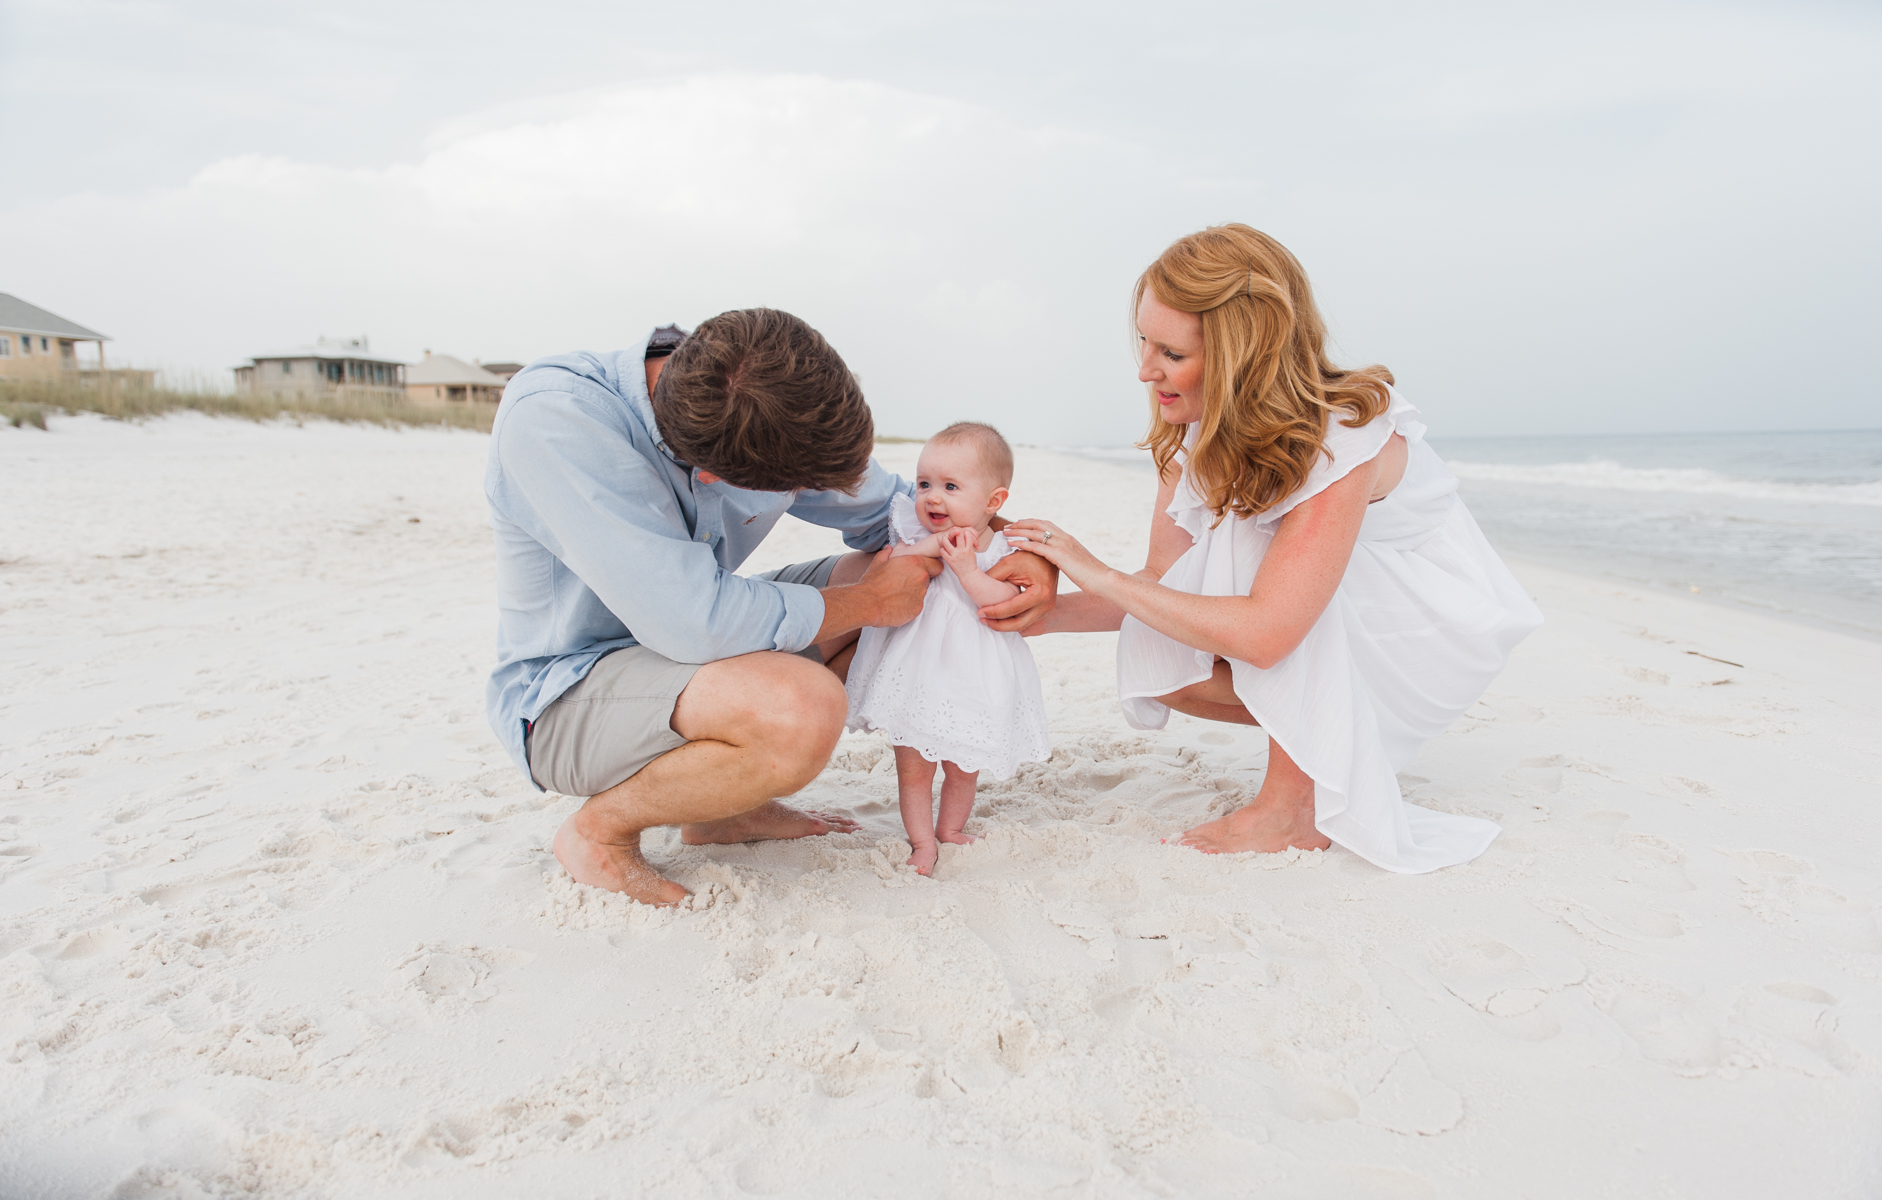 mom and dad with baby in sand-pensacola beach family photographer